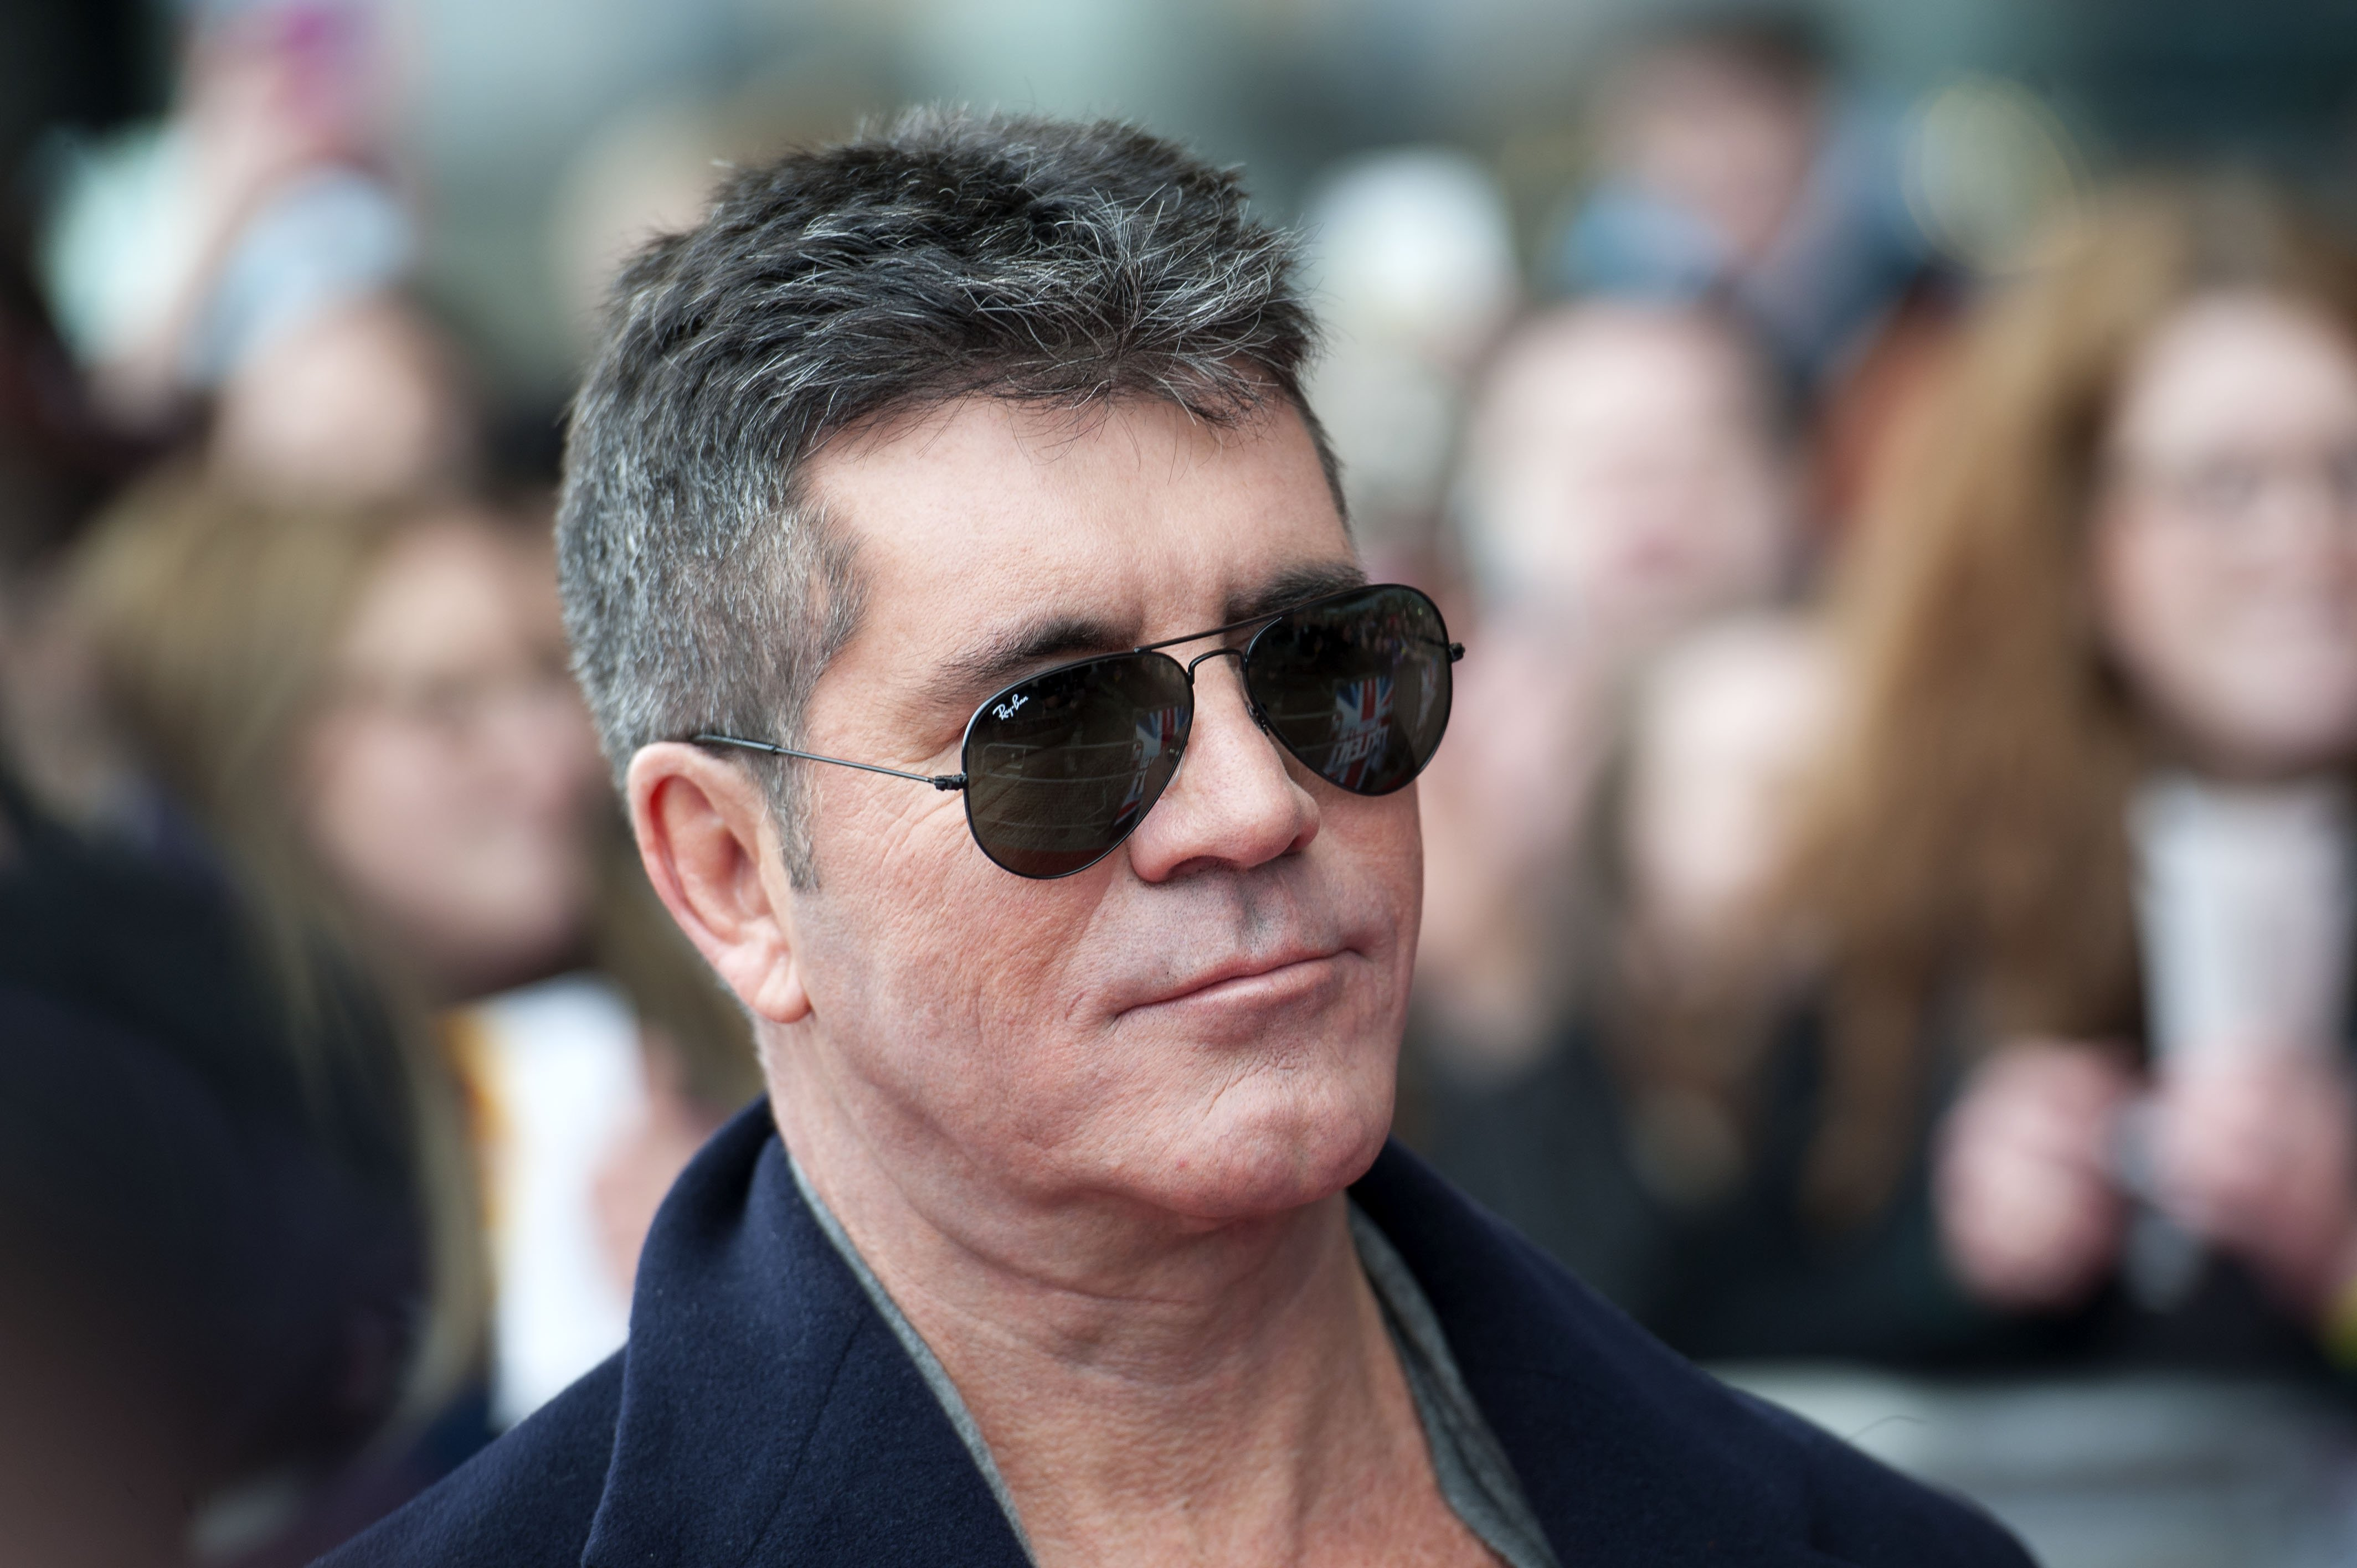 Simon Cowell arrives at the Britain's Got Talent Cardiff auditions | Source: Getty Images